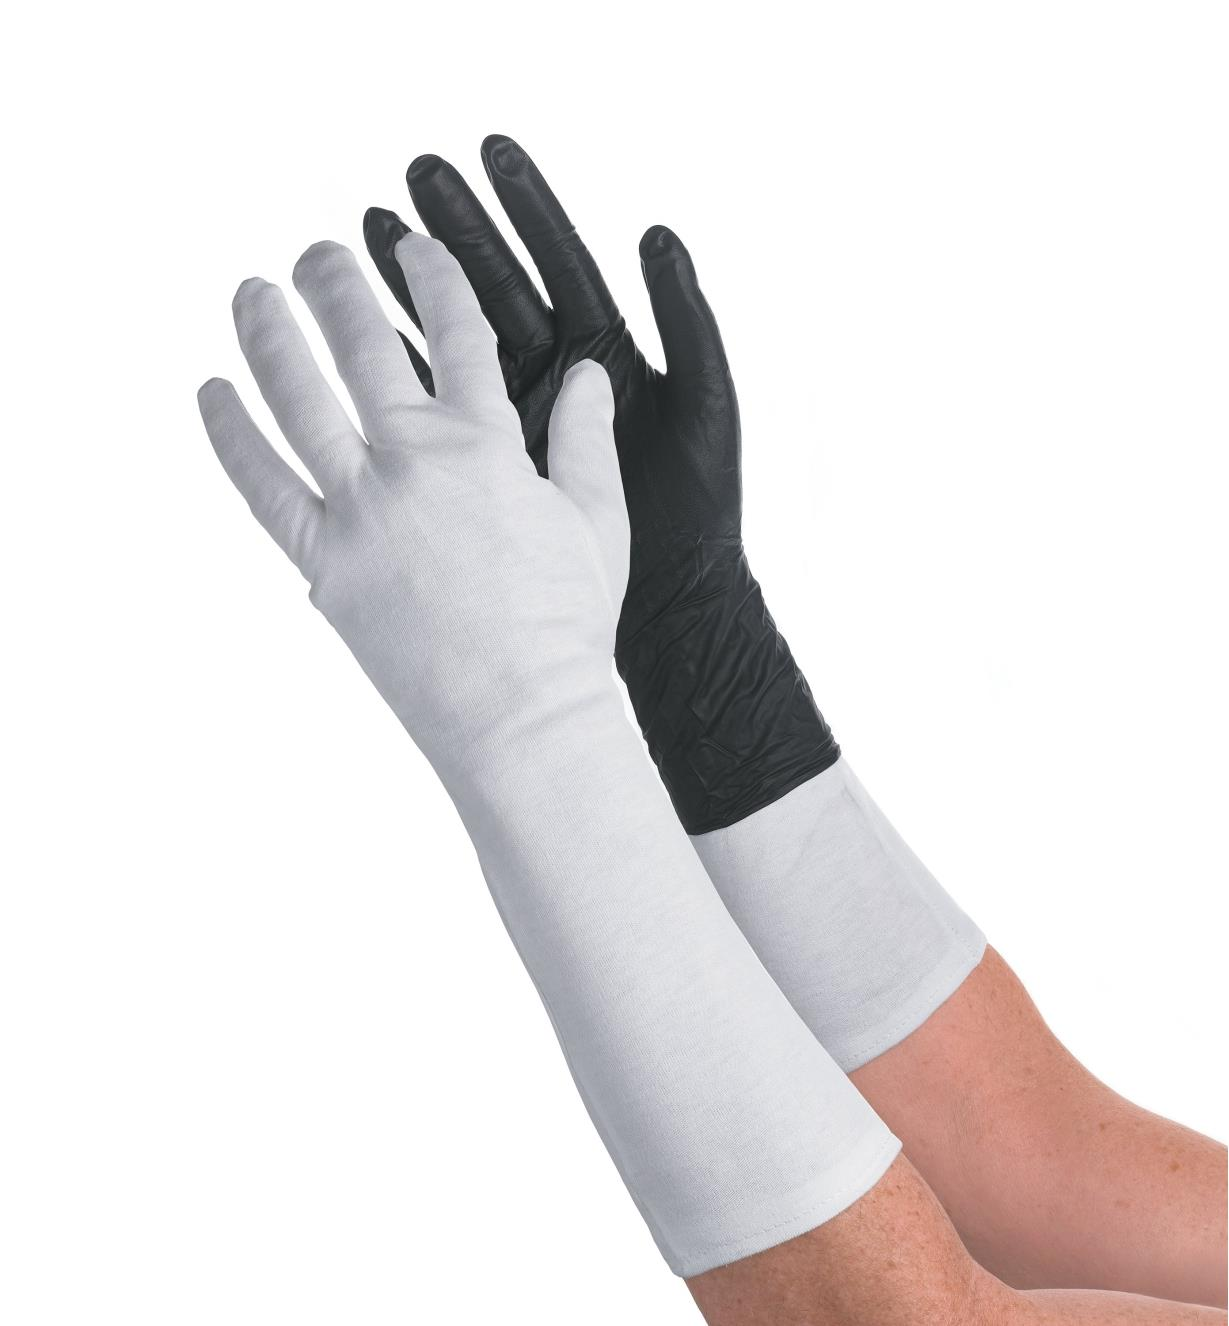 A pair of arms, one wearing a glove liner and the other wearing a glove liner under a glove